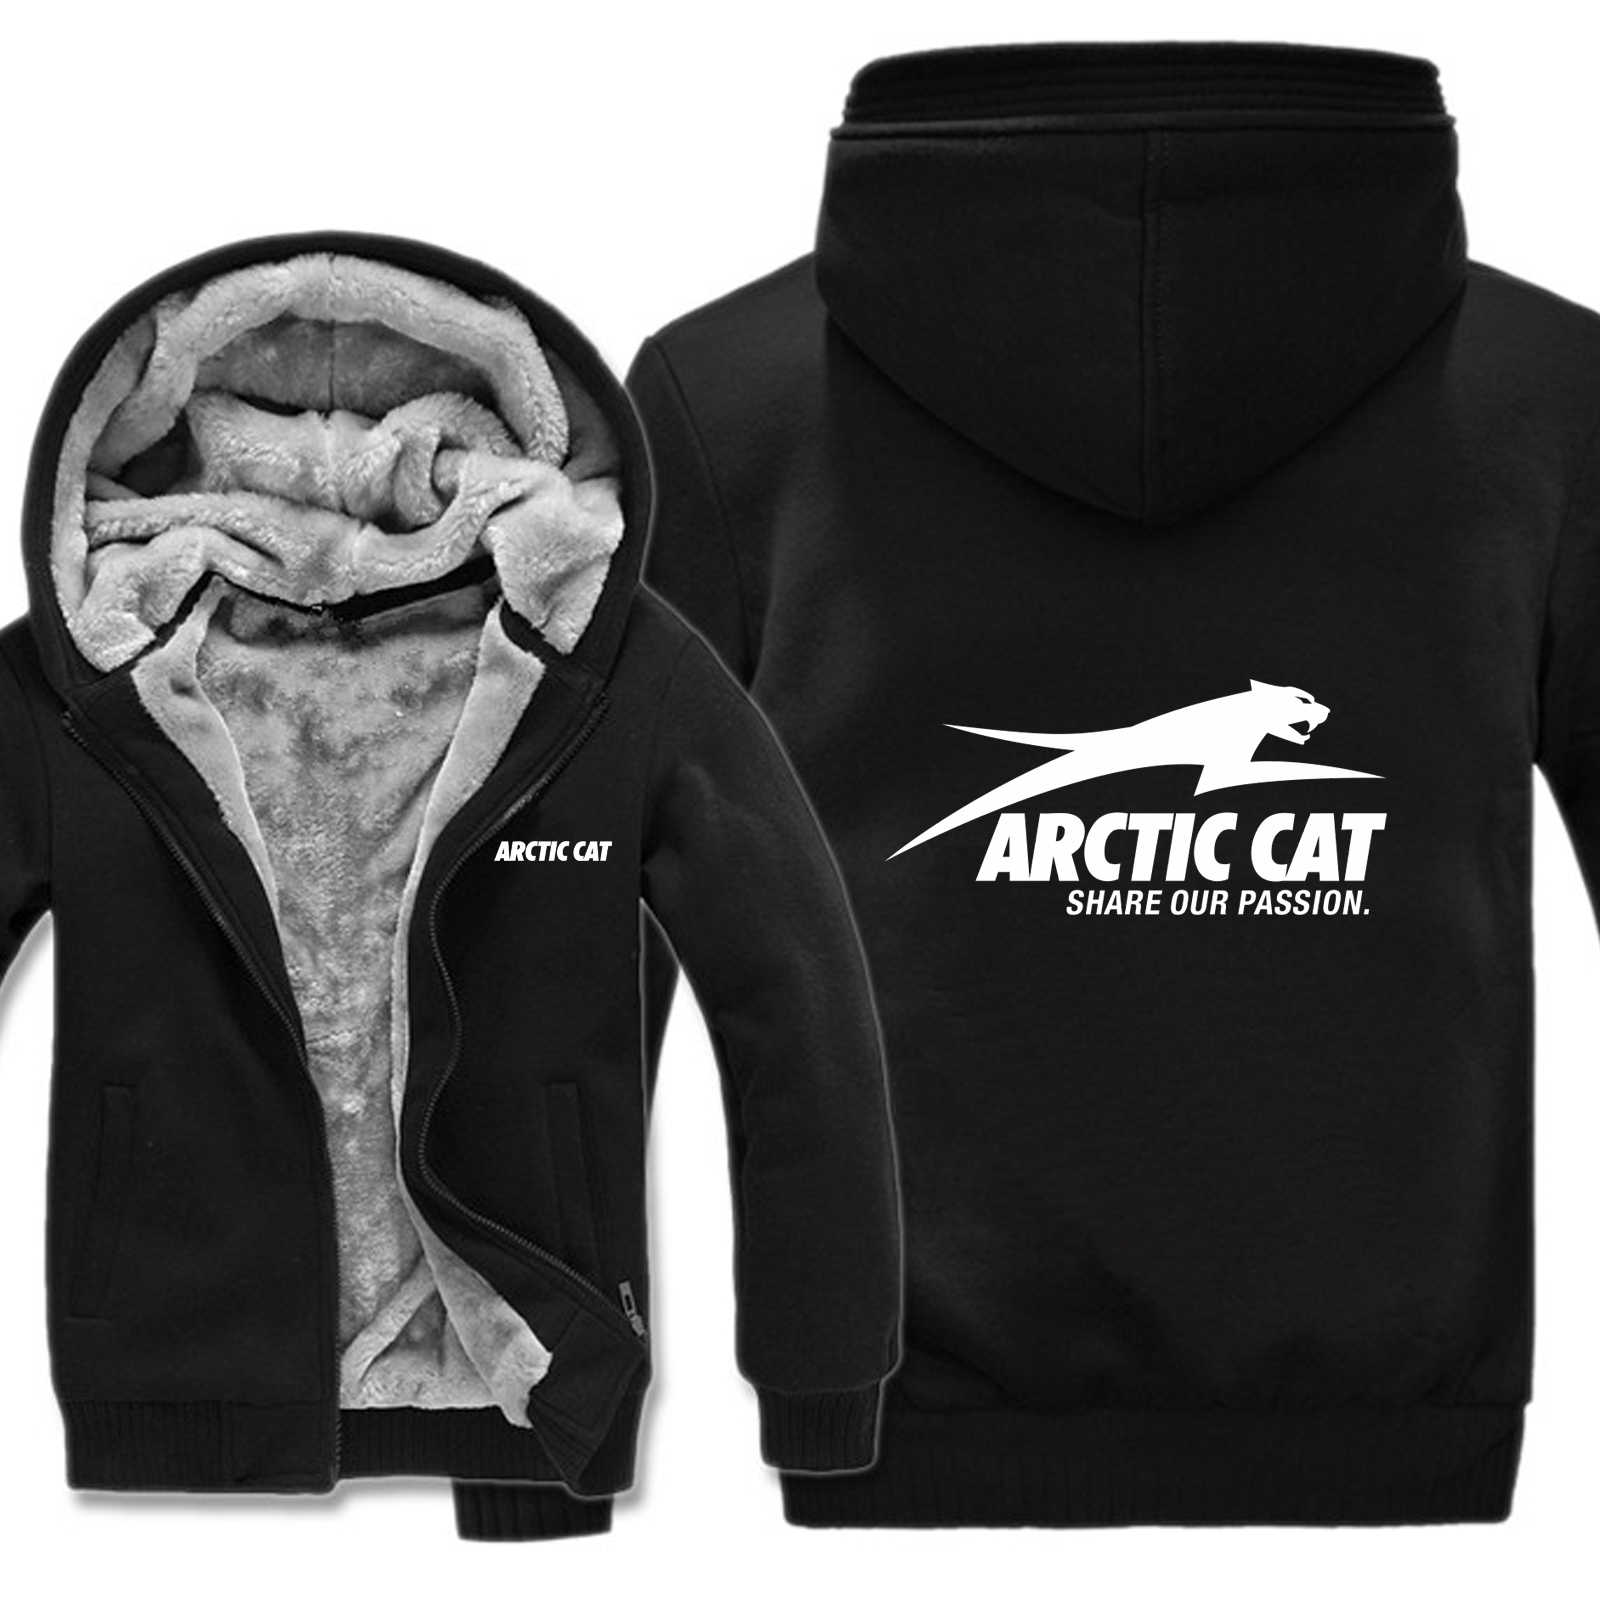 Arctic Cat Hoodies Men Fashion Coat Pullover Wool Liner Jacket Arctic Cat Sweatshirts Hoody HS-017